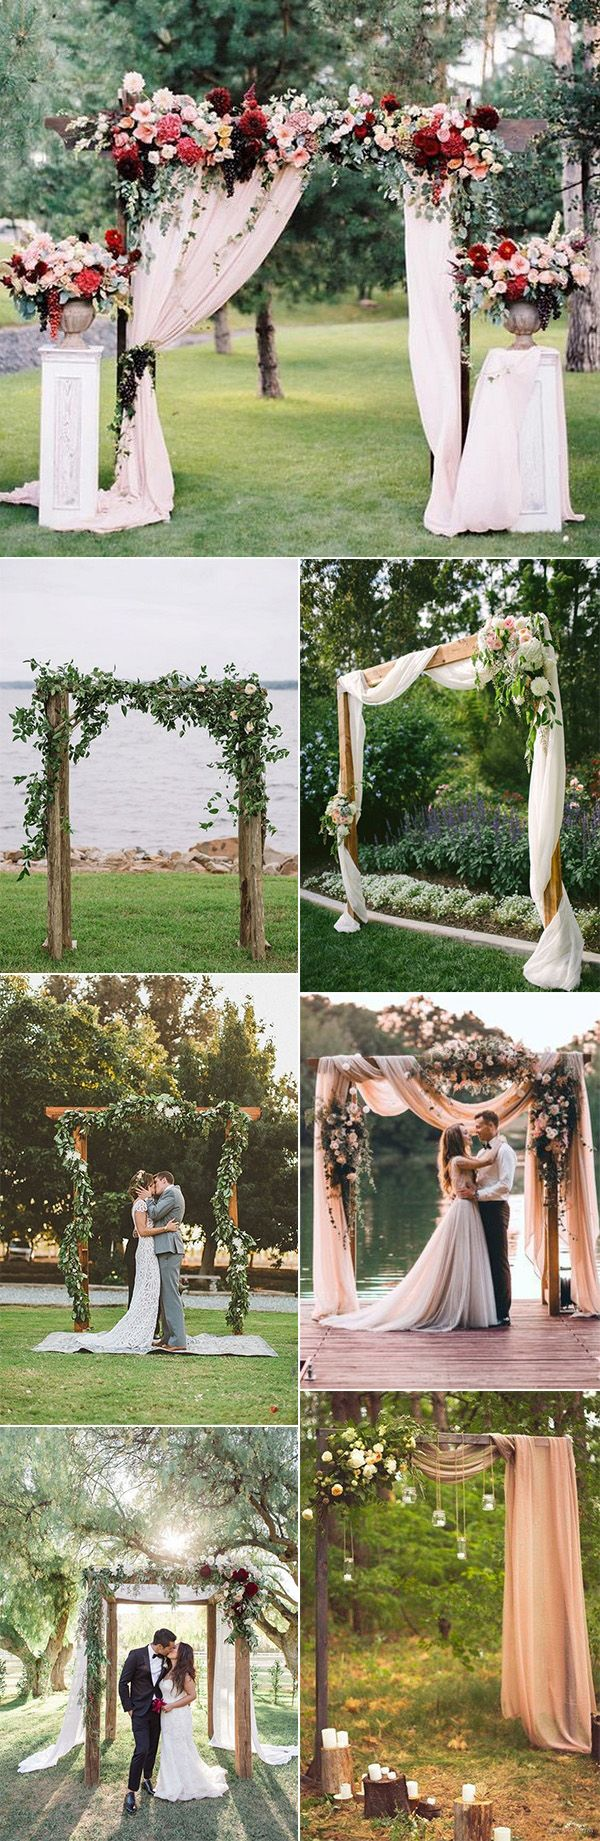 Ideas for wedding decorations outside   Brilliant Outdoor Wedding Decoration Ideas for  Trends  For